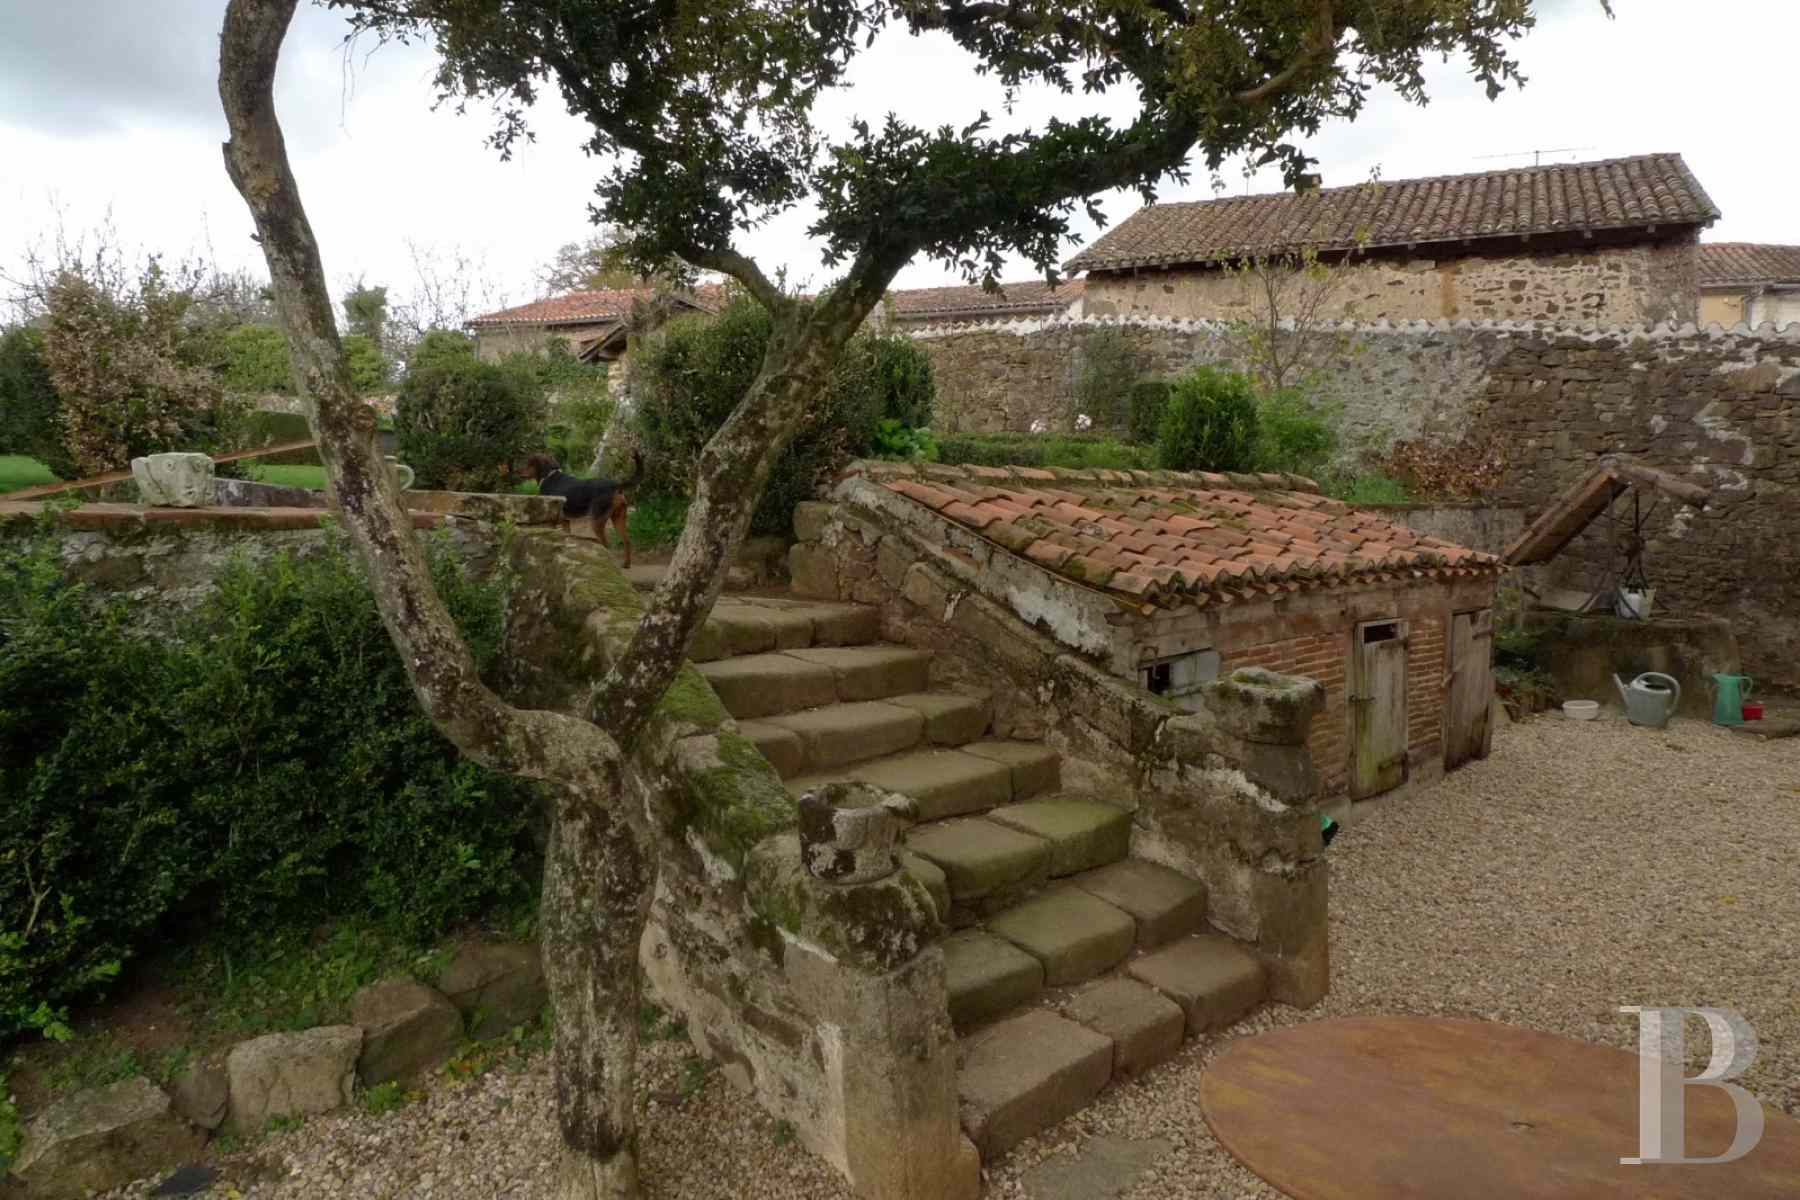 France mansions for sale poitou charentes dwelling 17th - 15 zoom